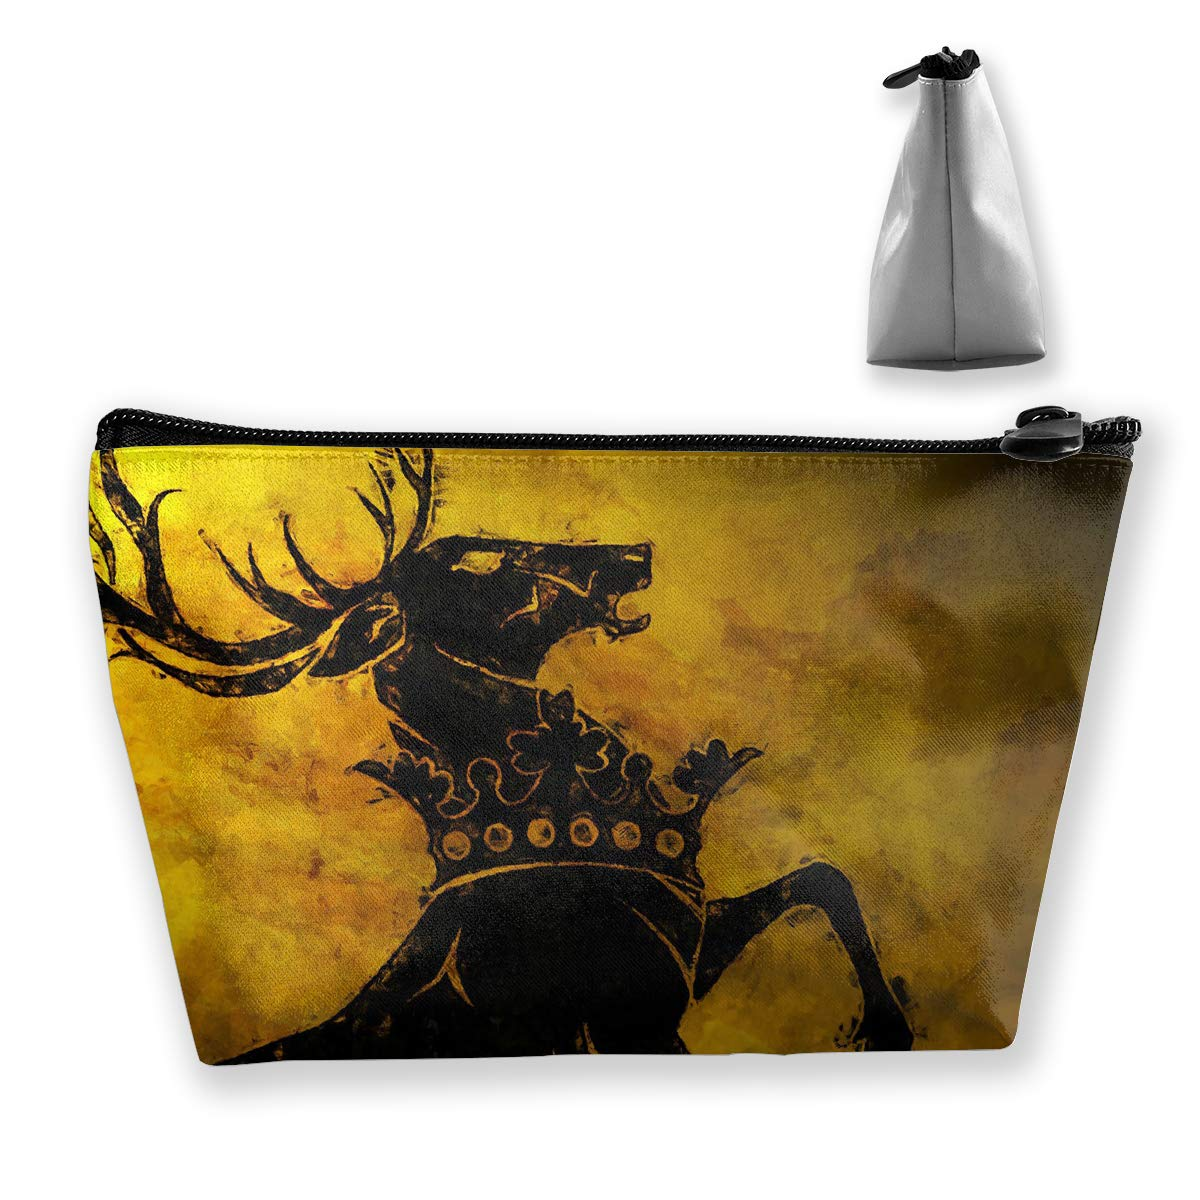 Makeup Bag Cosmetic Deer Game Thrones Portable Cosmetic Bag Mobile Trapezoidal Storage Bag Travel Bags with Zipper